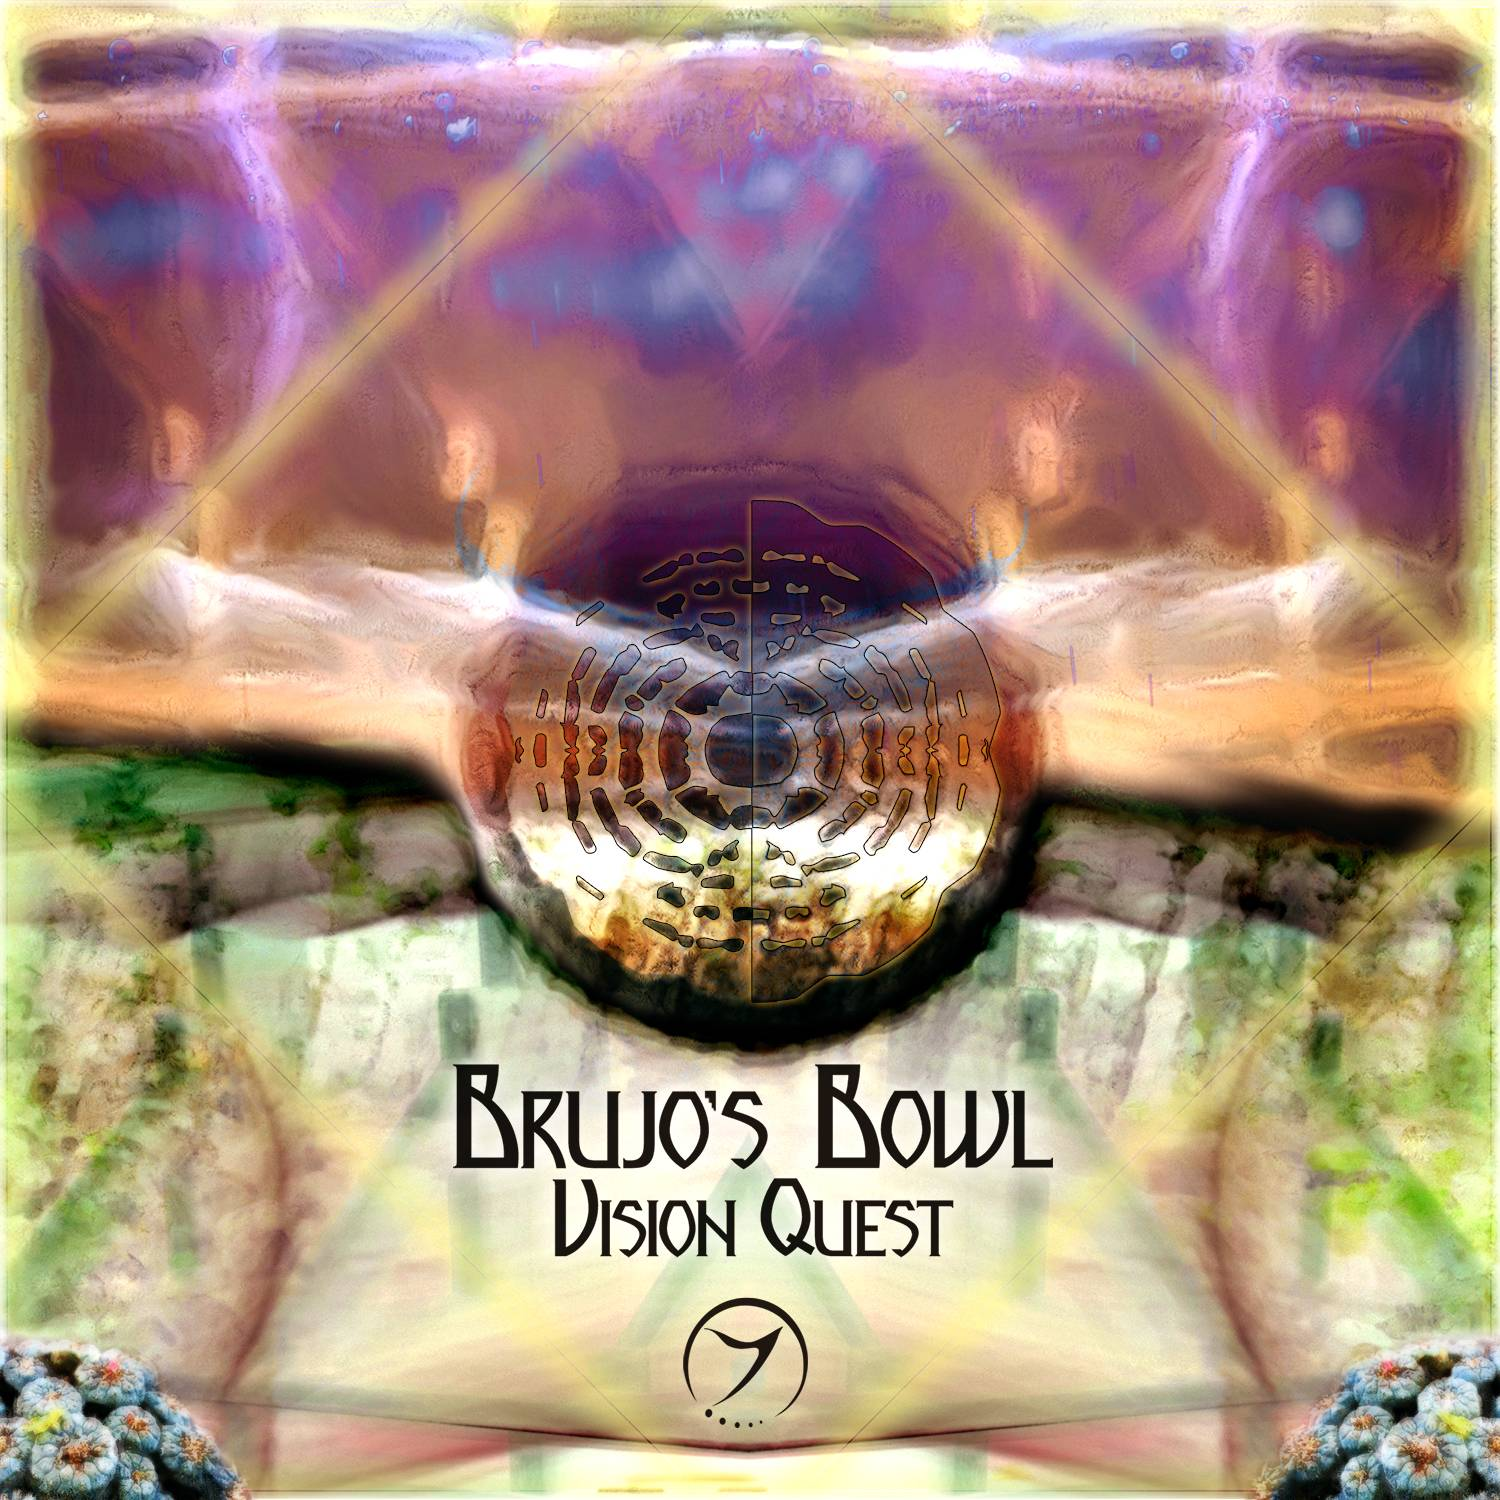 Trancentral's weekly new psytrance releases 30/8/2016